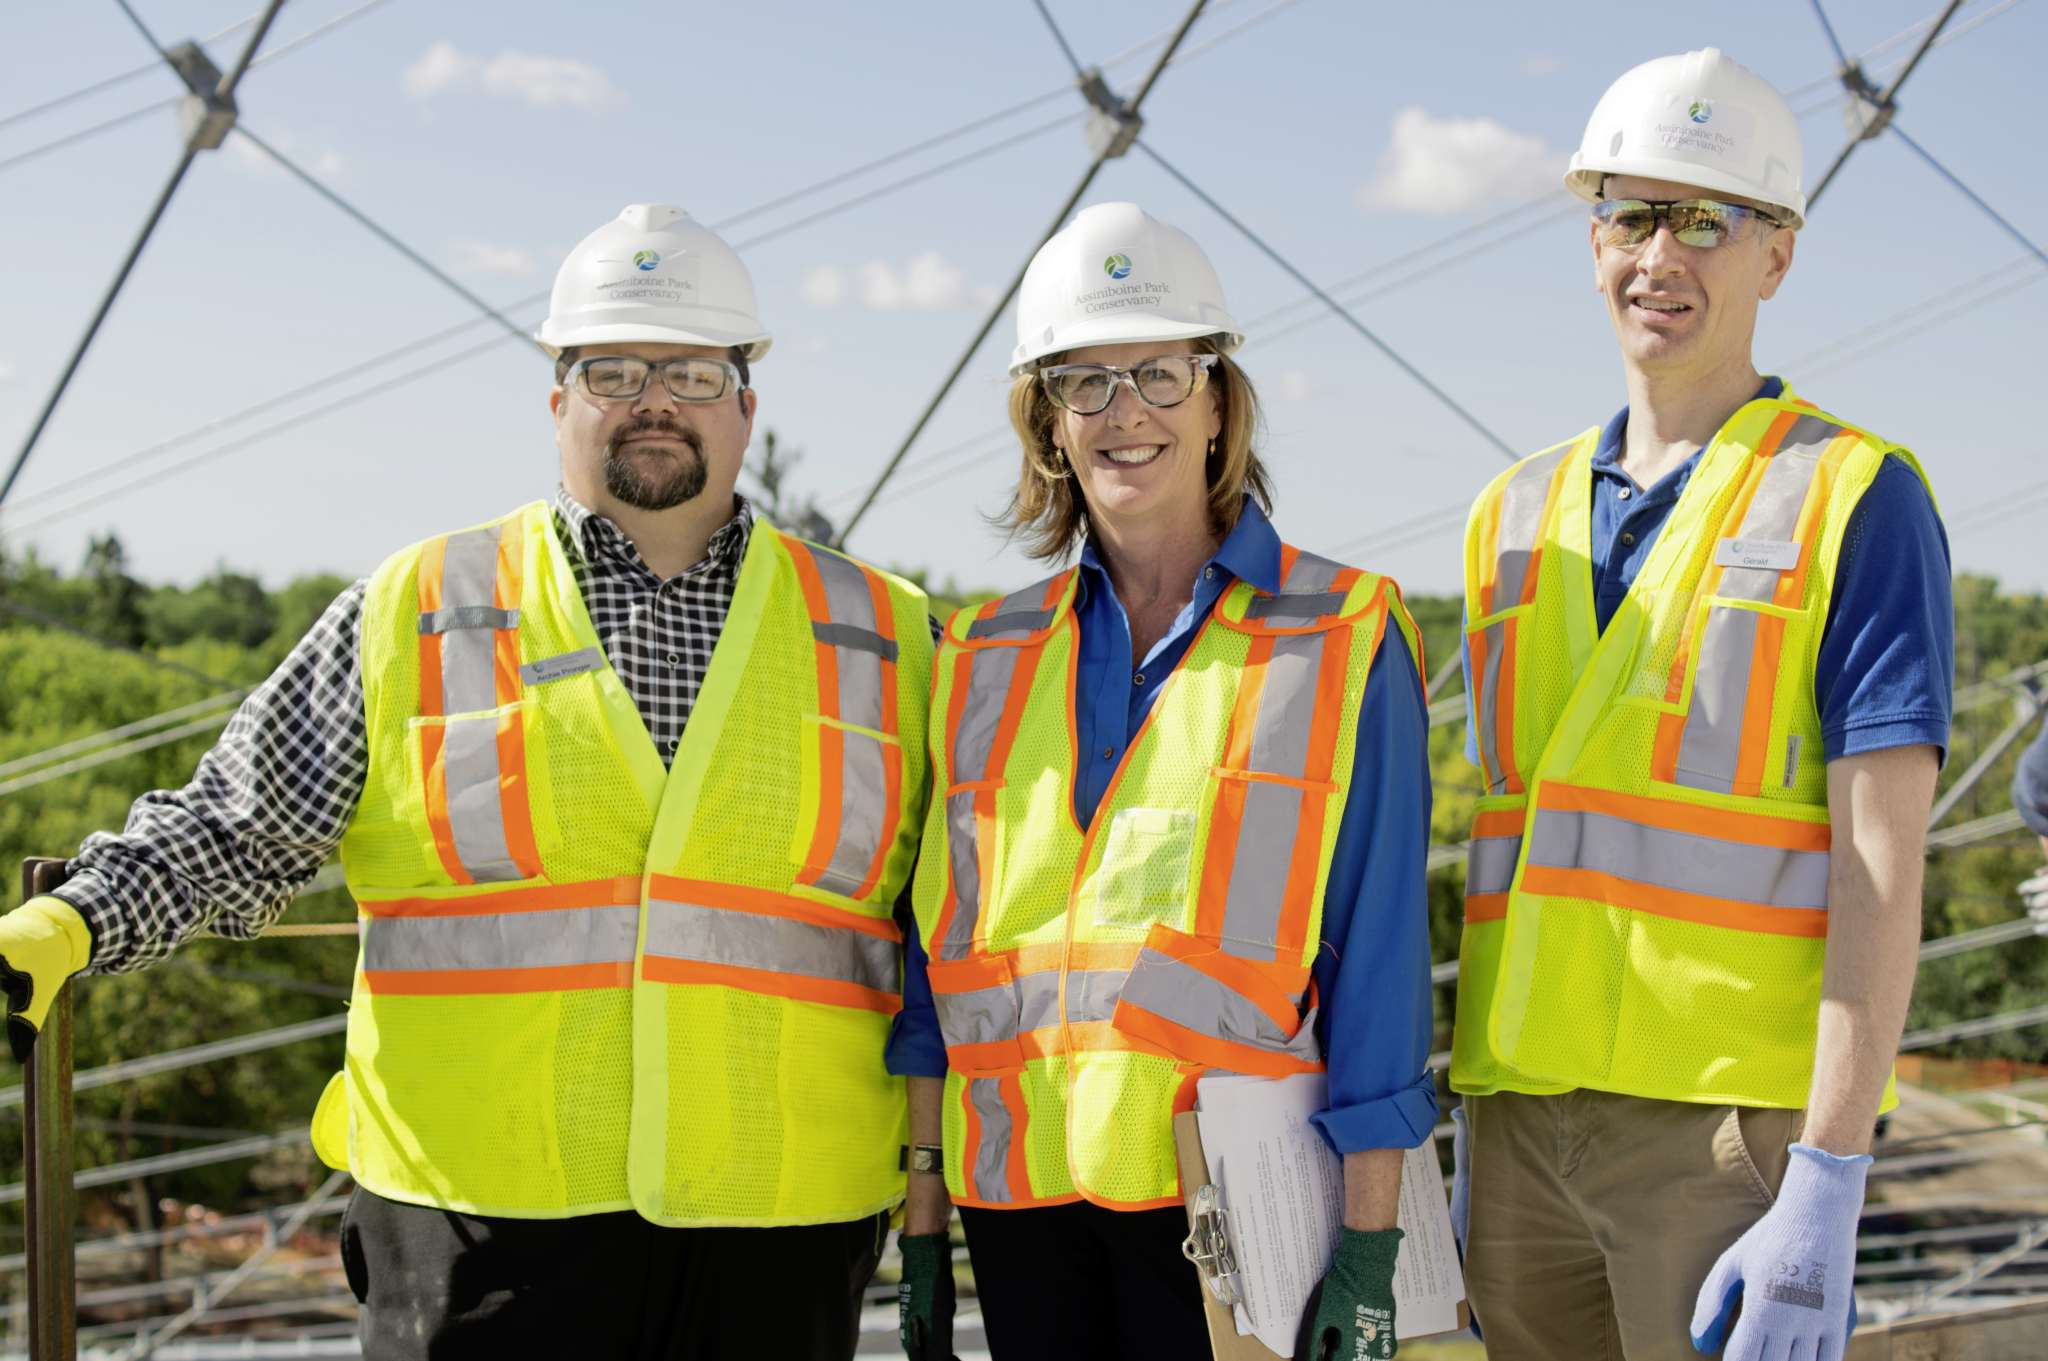 Assiniboine Park Conservancy chief executive officer Margaret Redmond (centre) is pictured with vice-president of operations Archie Pronger (left) and project manager Gerald Dieleman (right) on the canopy walkway of The Leaf biome, currently under construction at Assiniboine Park as part of Canada's Diversity Gardens. The first of its kind biome in Canada is behind schedule but will open sometime in 2021. (DANIELLE DA SILVA - SOU'WESTER)